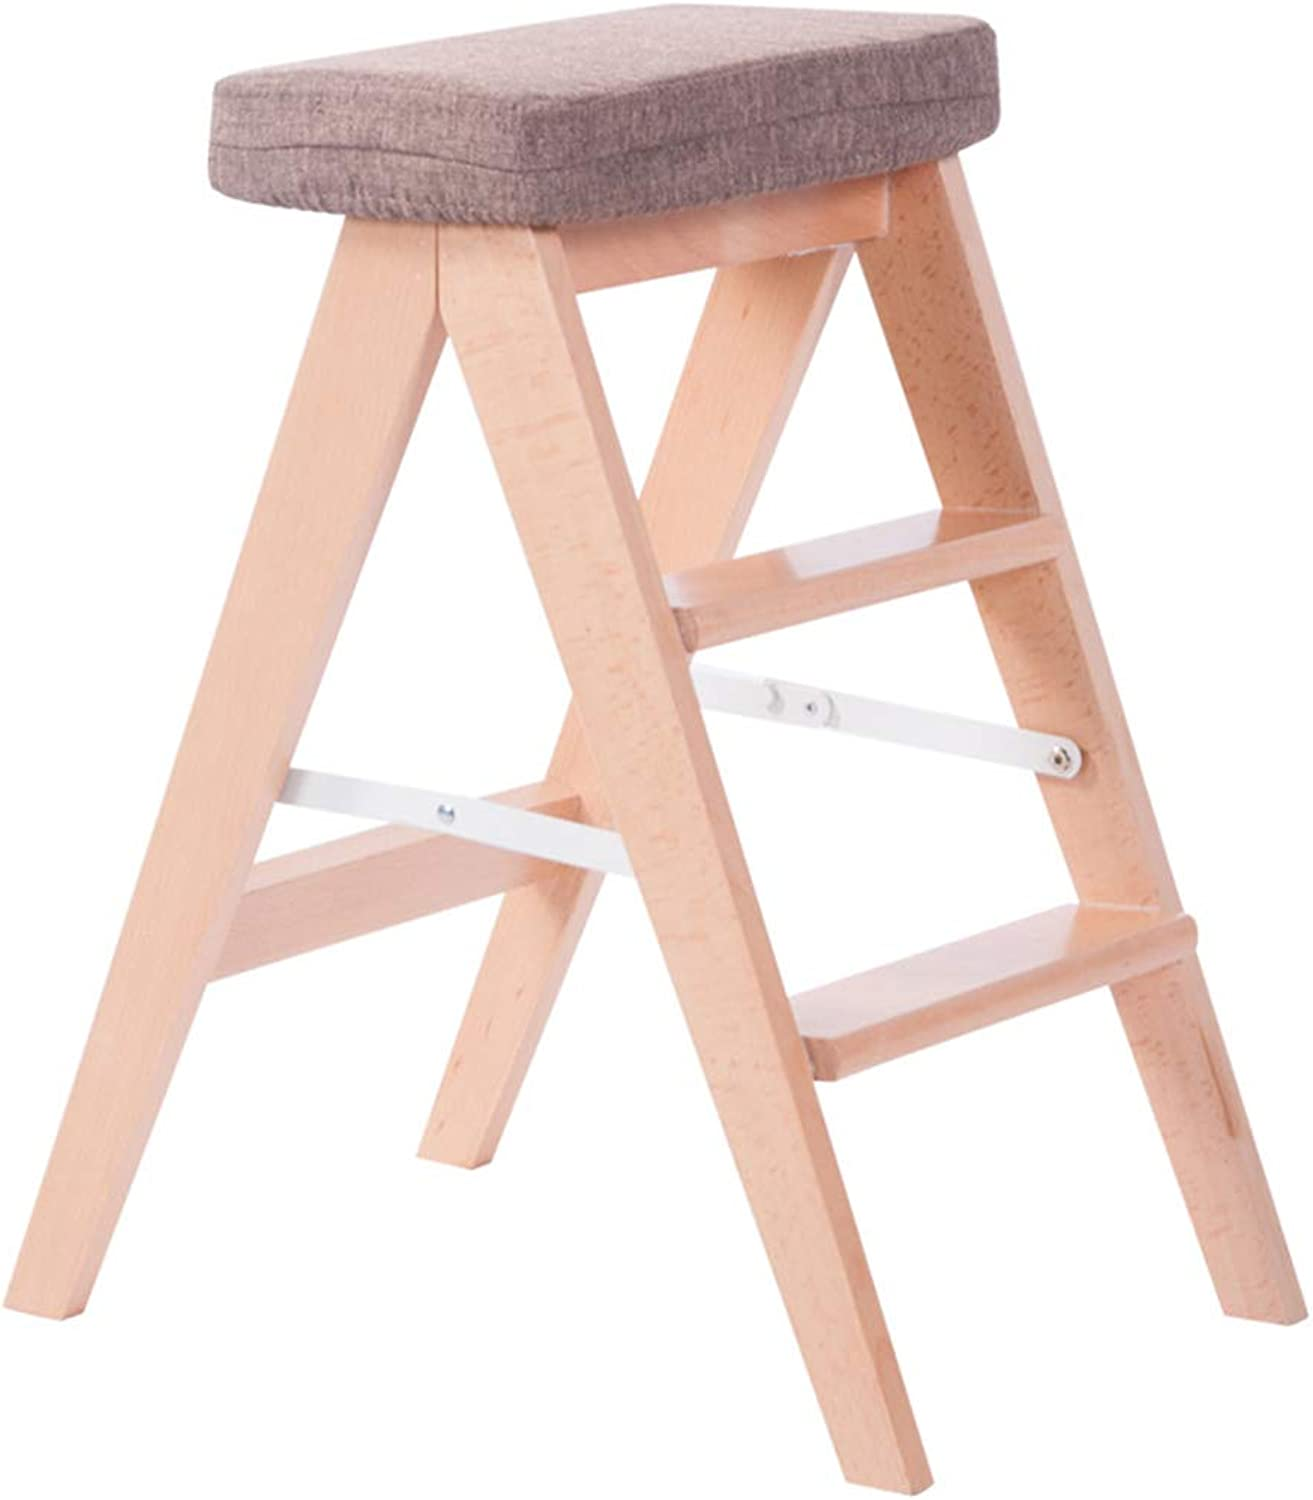 Multifunction Folding Ladder Solid Wood Ladder Stool, Portable Step Stool Indoor Three-Step Stool Step Ladder Foldable Stepladder,D